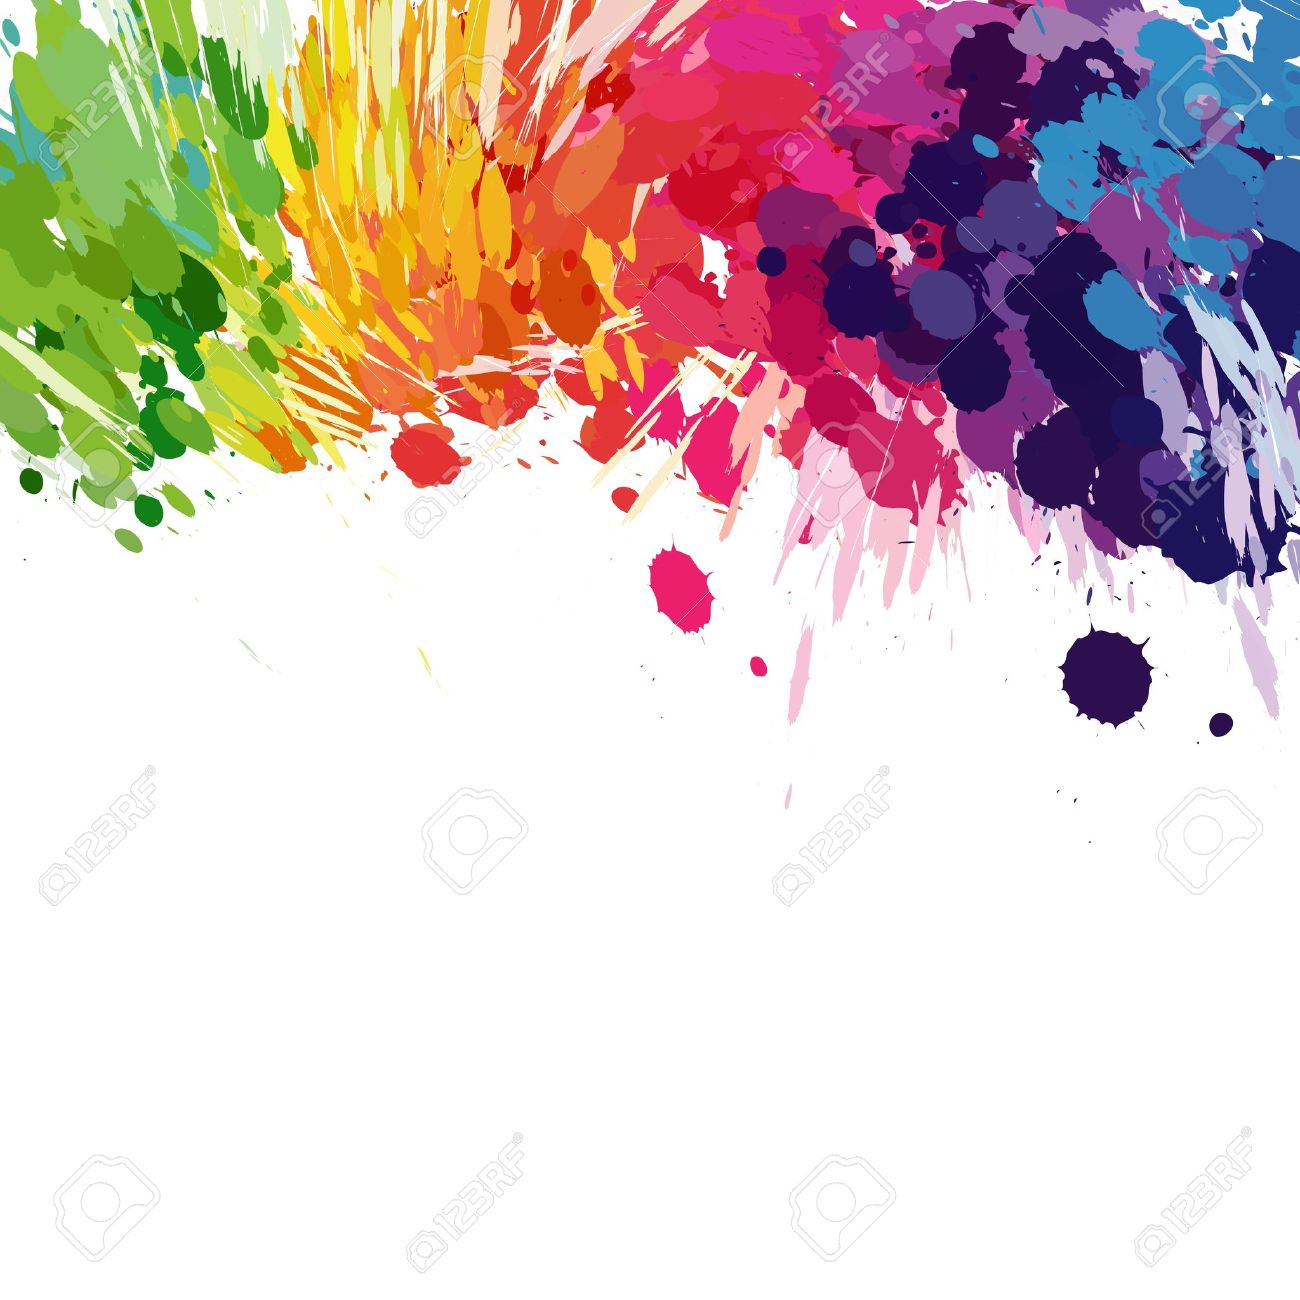 Abstract Background Of Colored Splashes Blots Stock Vector